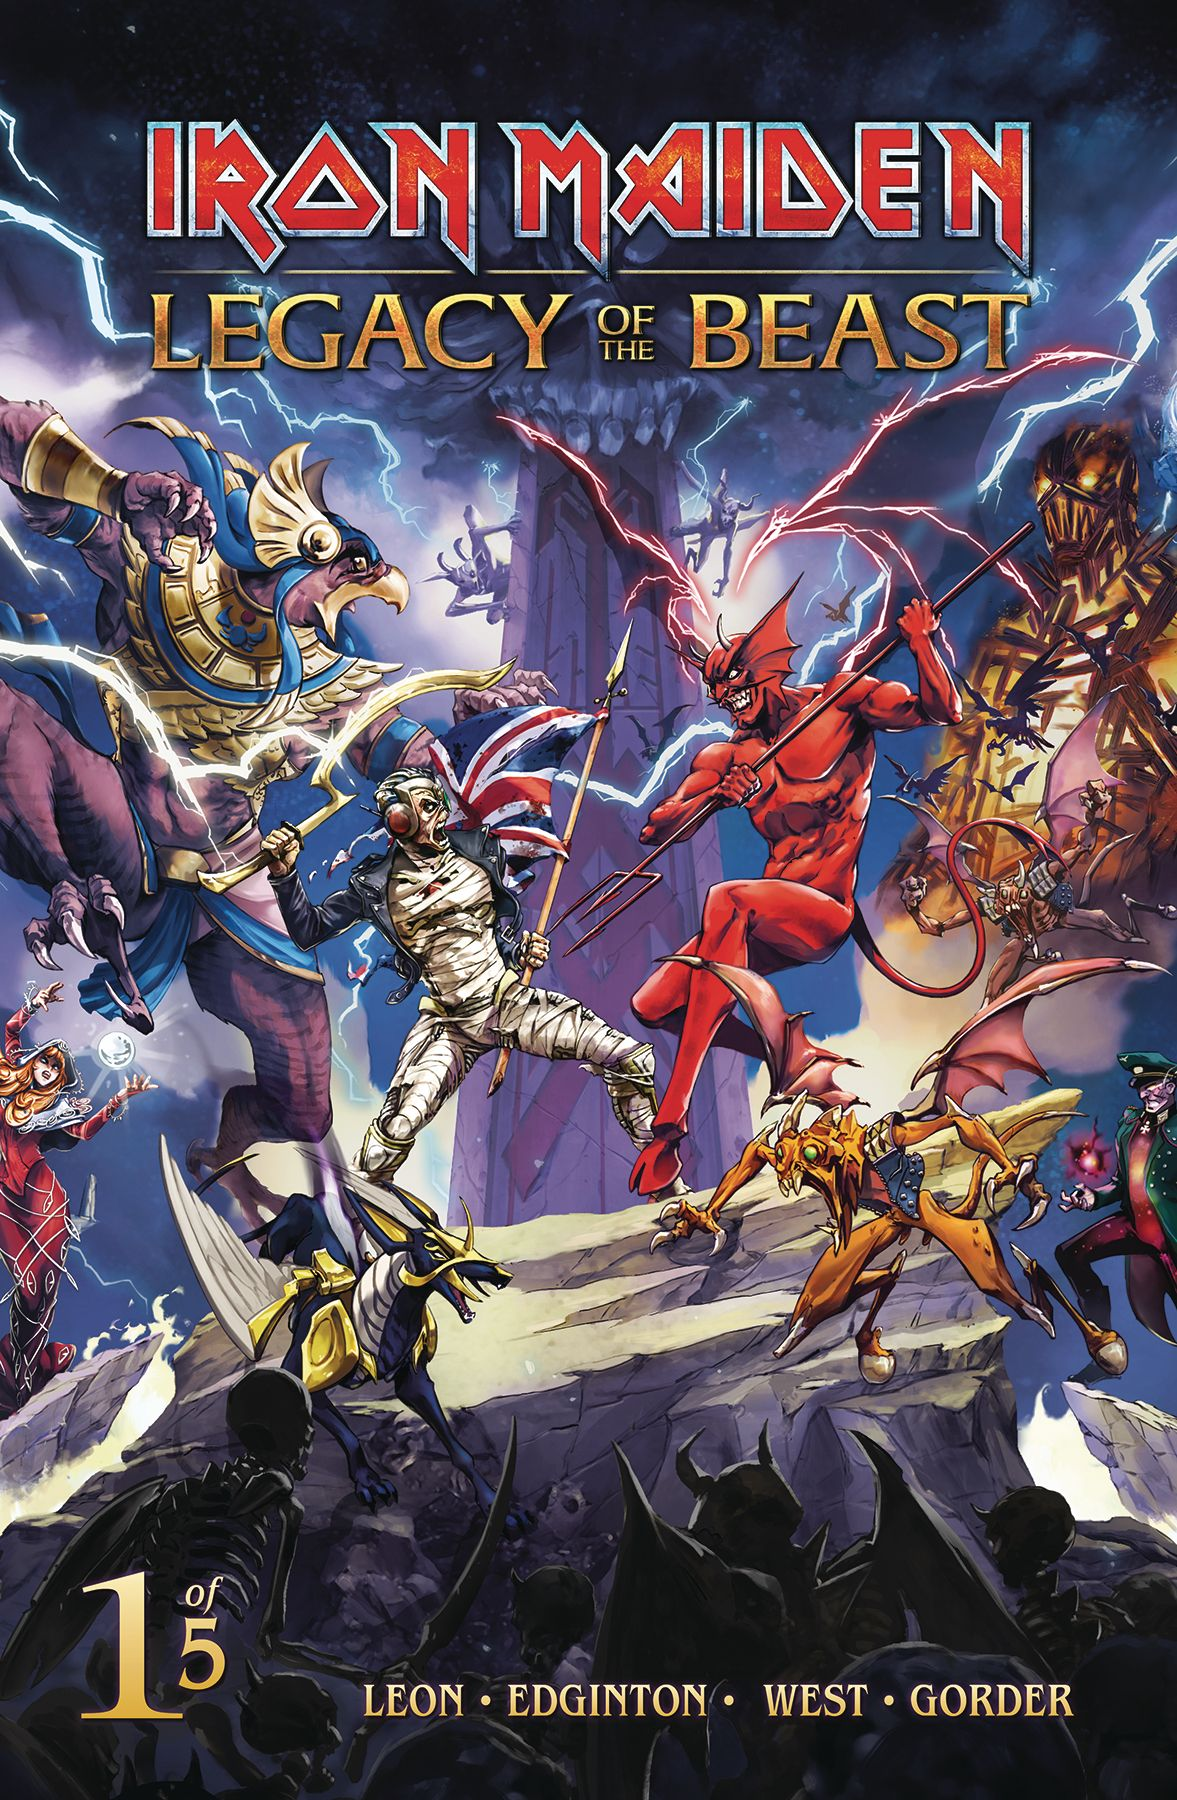 Iron Maiden Legacy Of The Beast 1 Iron Maiden Posters Iron Maiden Albums Iron Maiden